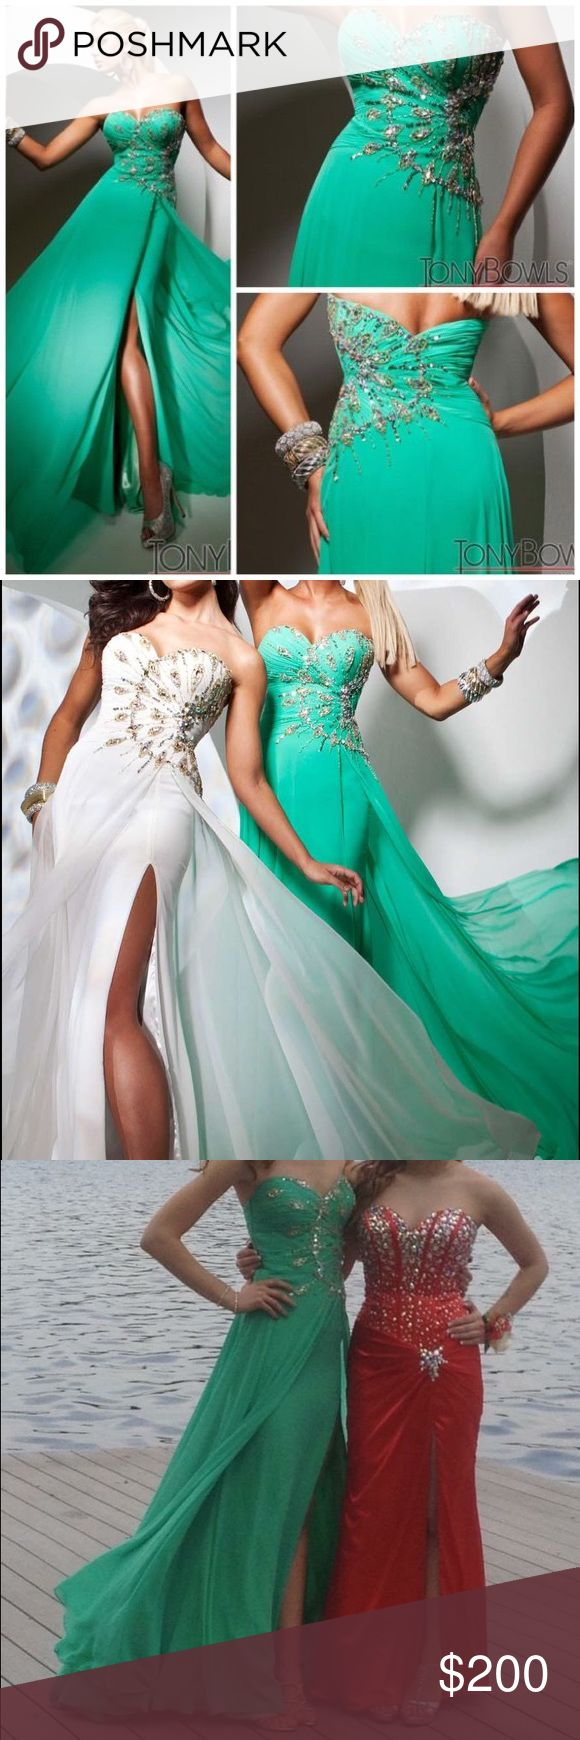 Tony Bowls Green Strapless Sweetheart Prom Dress Tony Bowls 113506. Worn to one prom, altered from size 6 to fit size 00/0. Great condition. Tony Bowls Dresses Prom